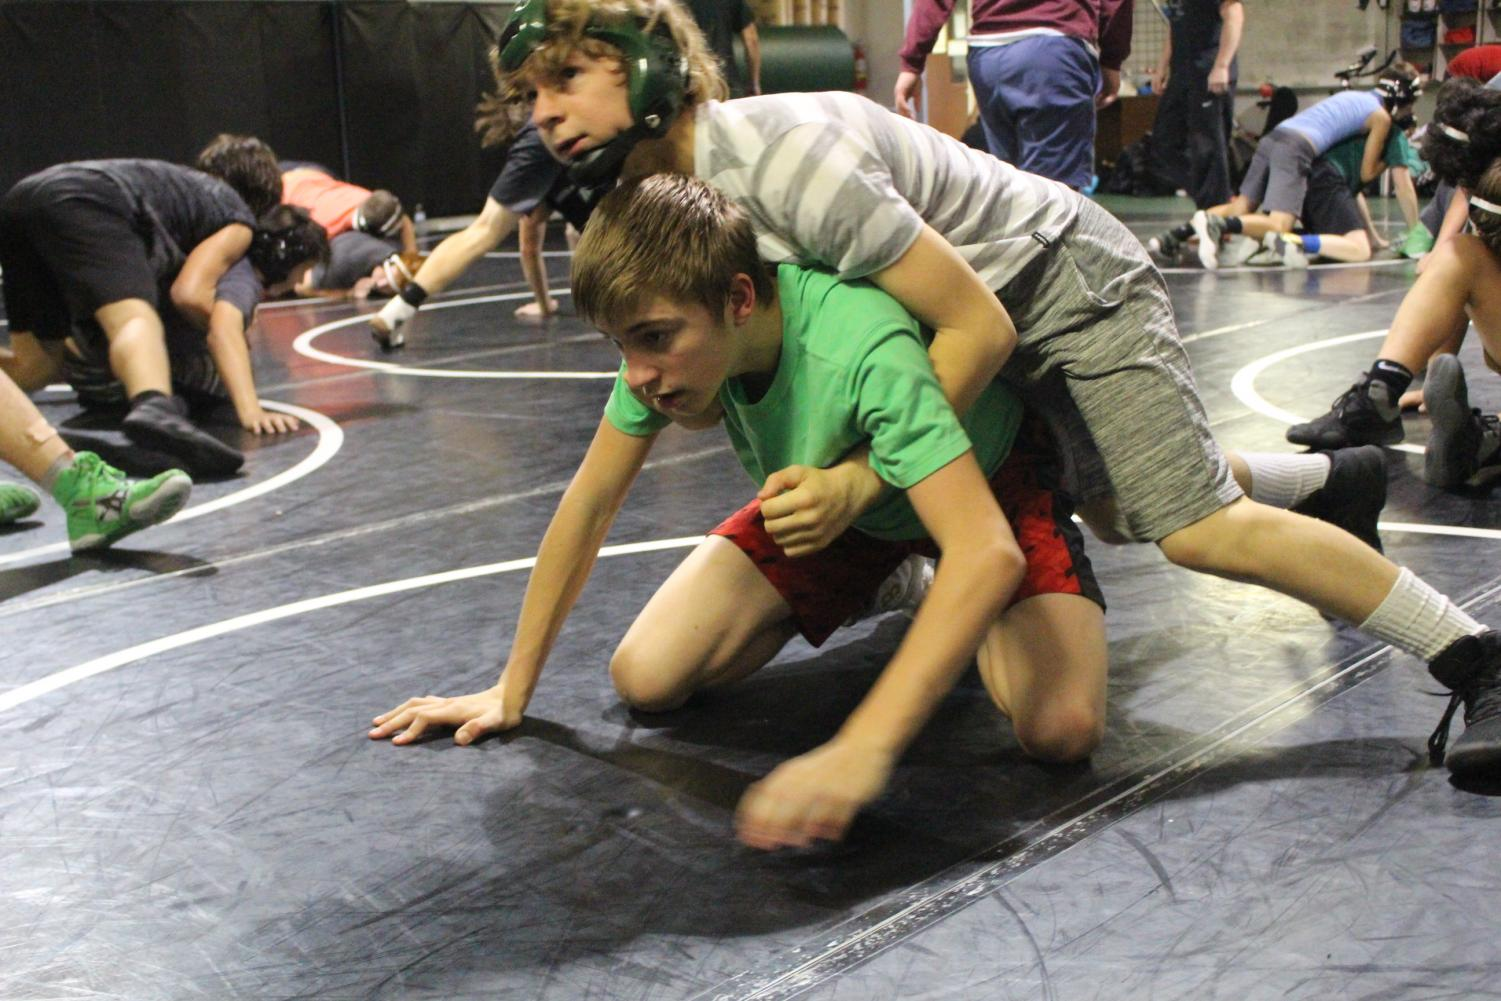 Freshmen Benton Breshears and Brenden LaBoube wrestle with one another during practice. Breshears wrestled during middle school.